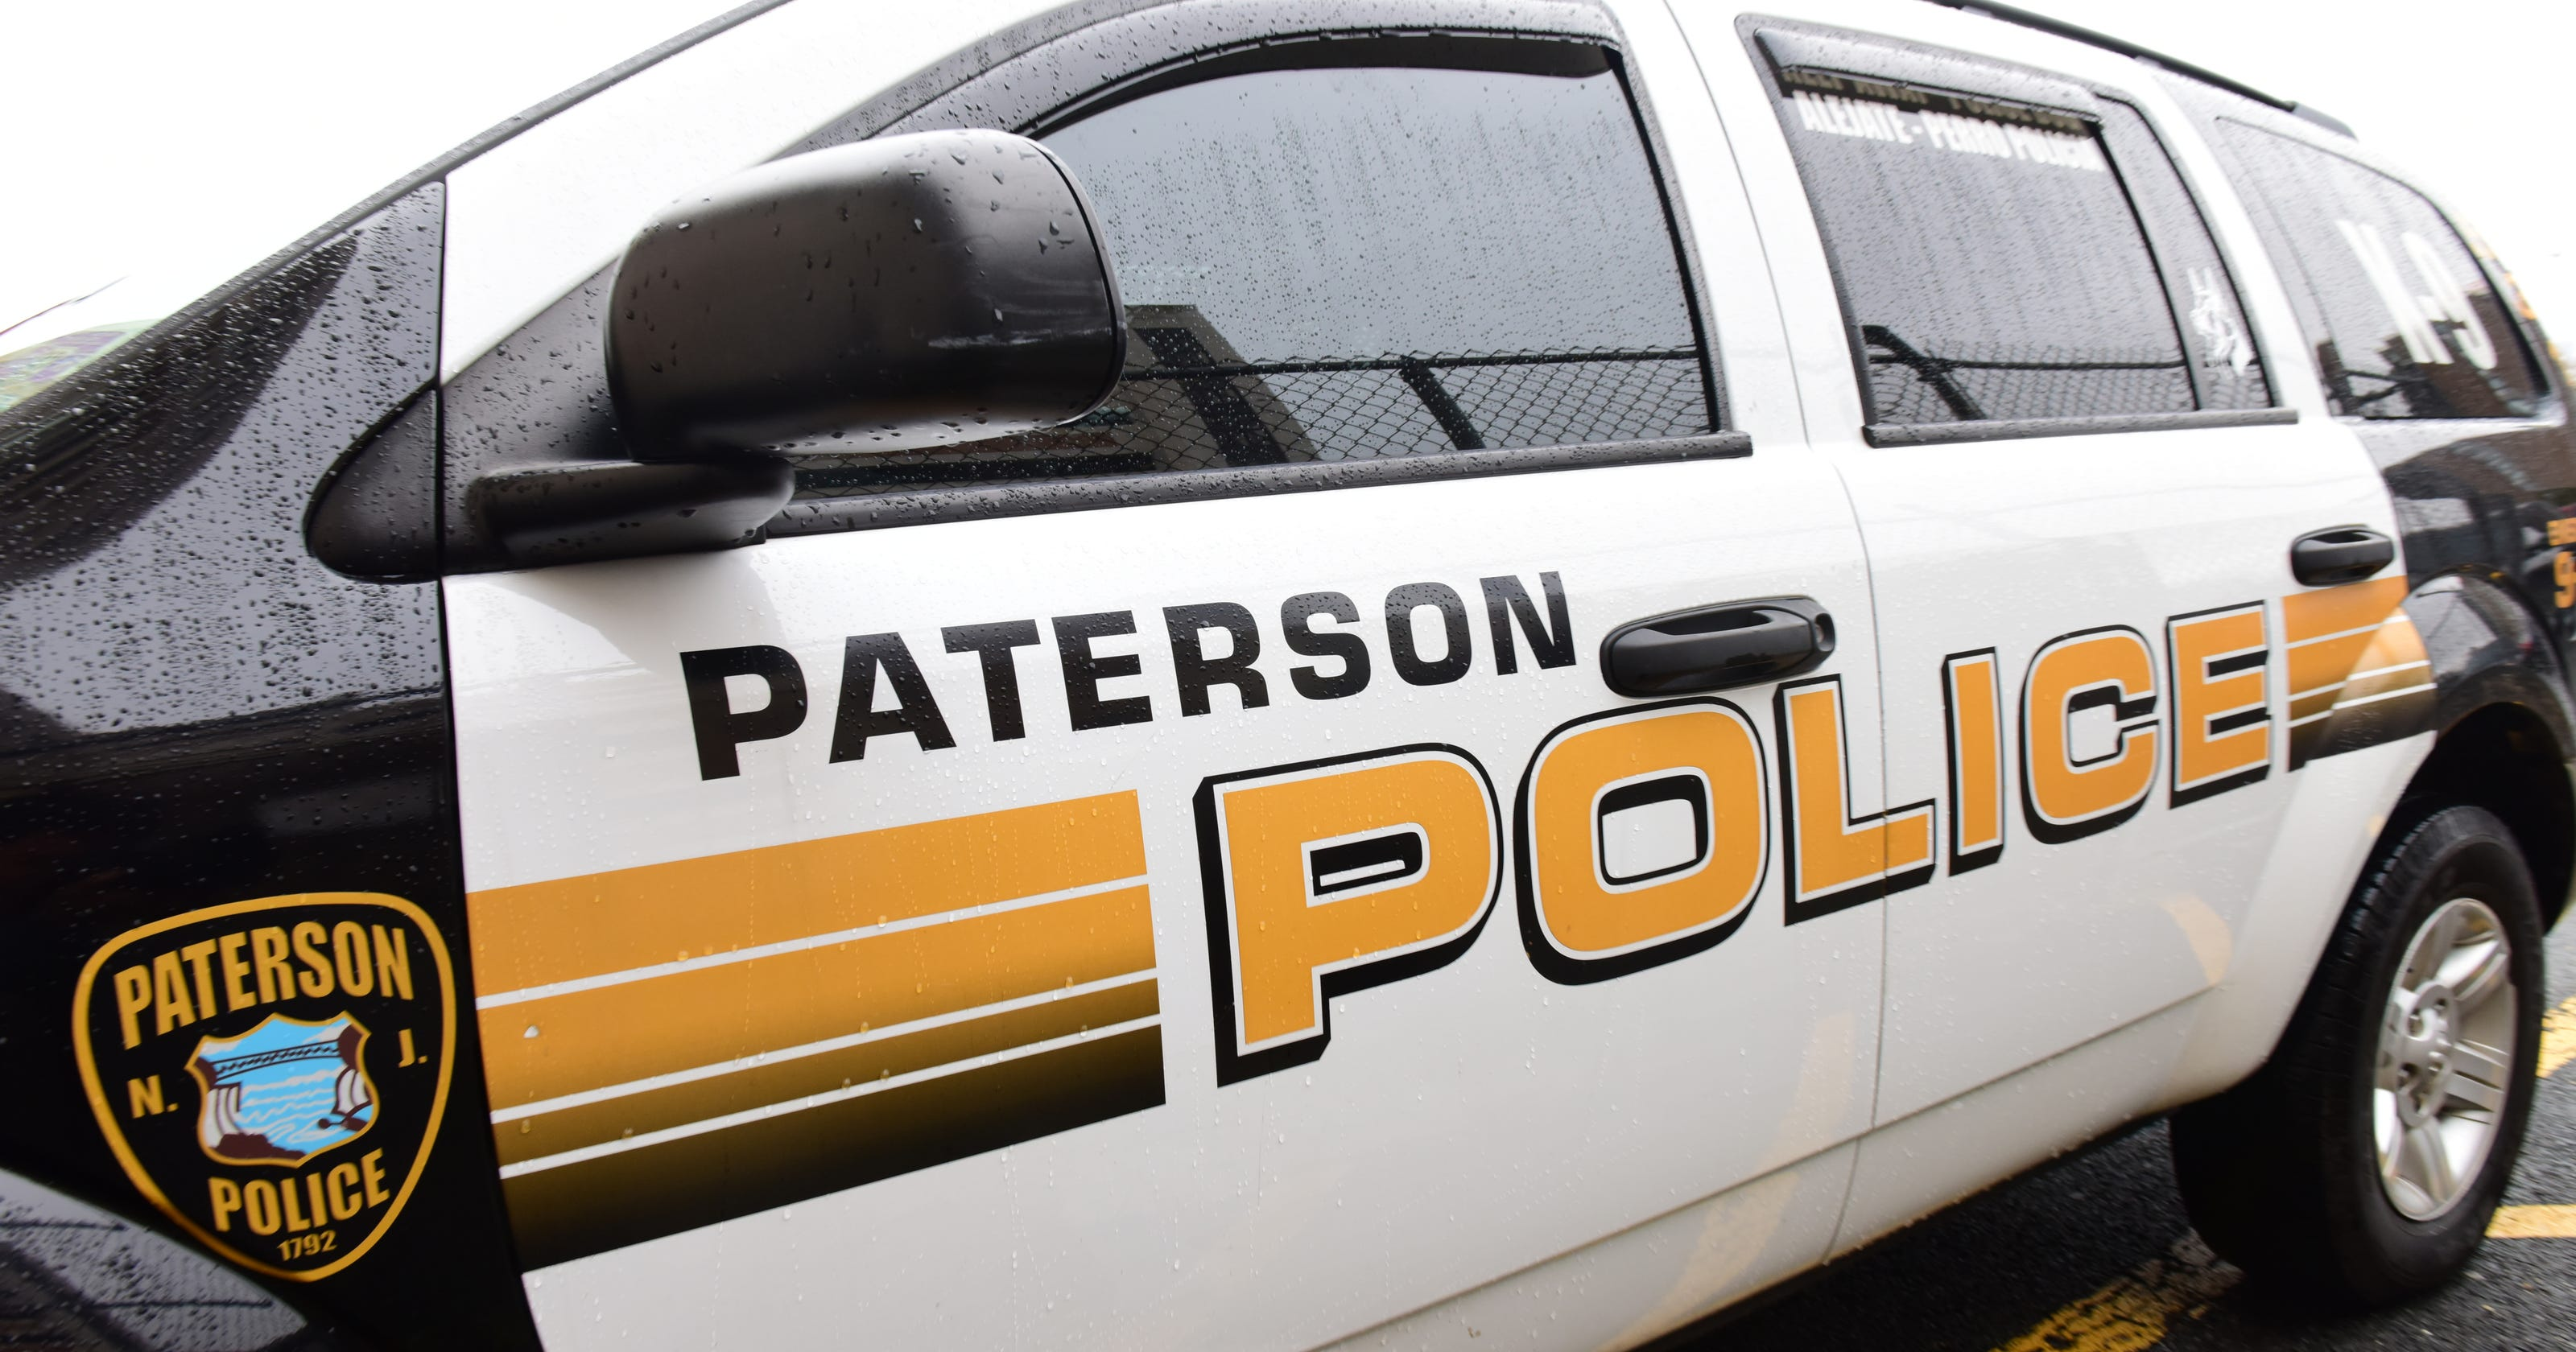 Paterson police: Man arrested after foot chase found with gun, heroin